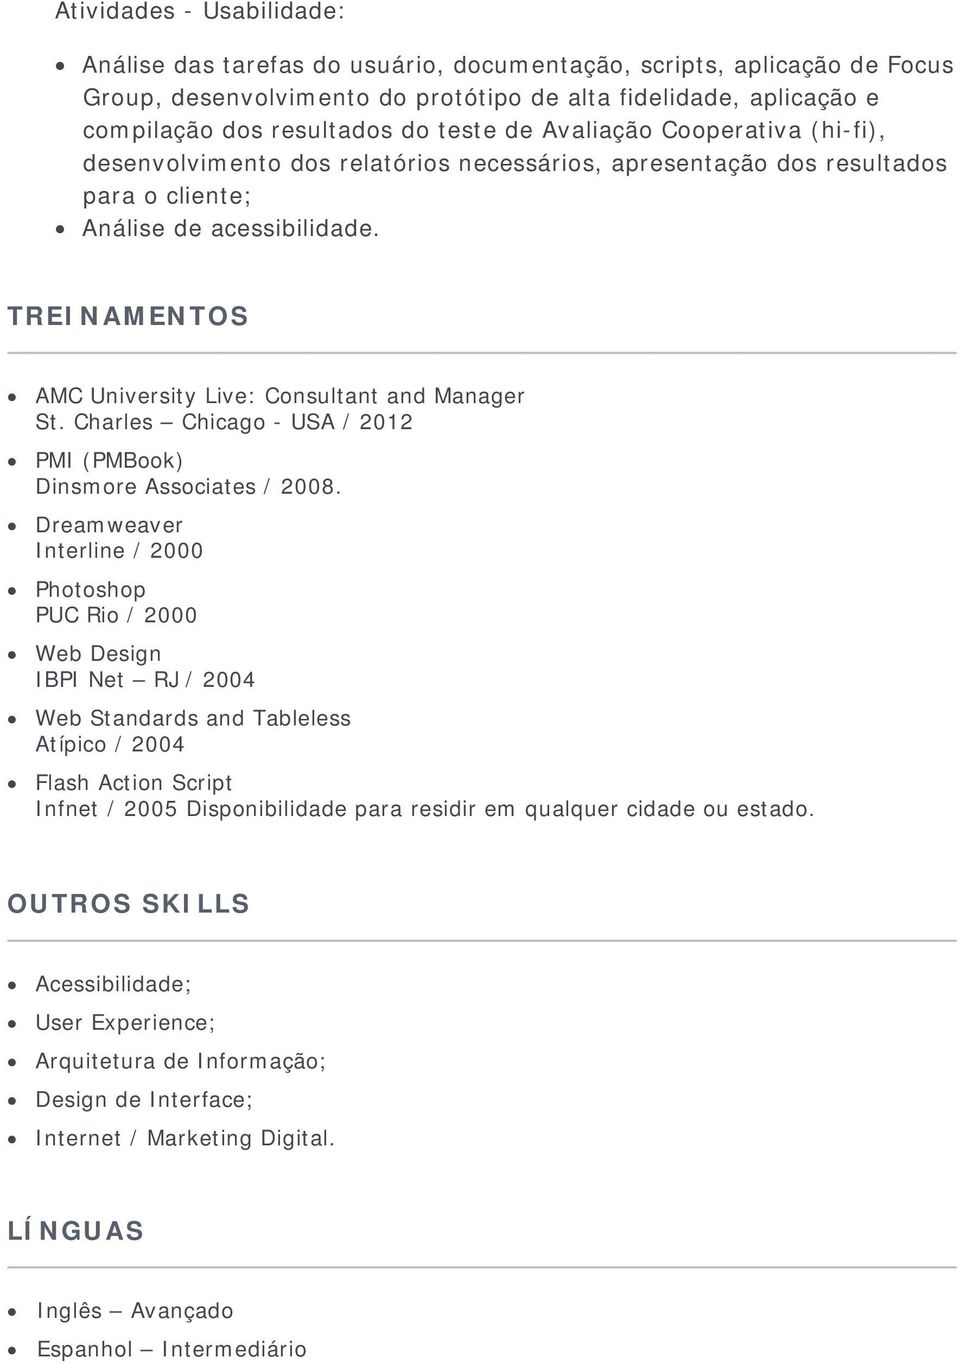 TREINAMENTOS AMC University Live: Consultant and Manager St. Charles Chicago - USA / 2012 PMI (PMBook) Dinsmore Associates / 2008.